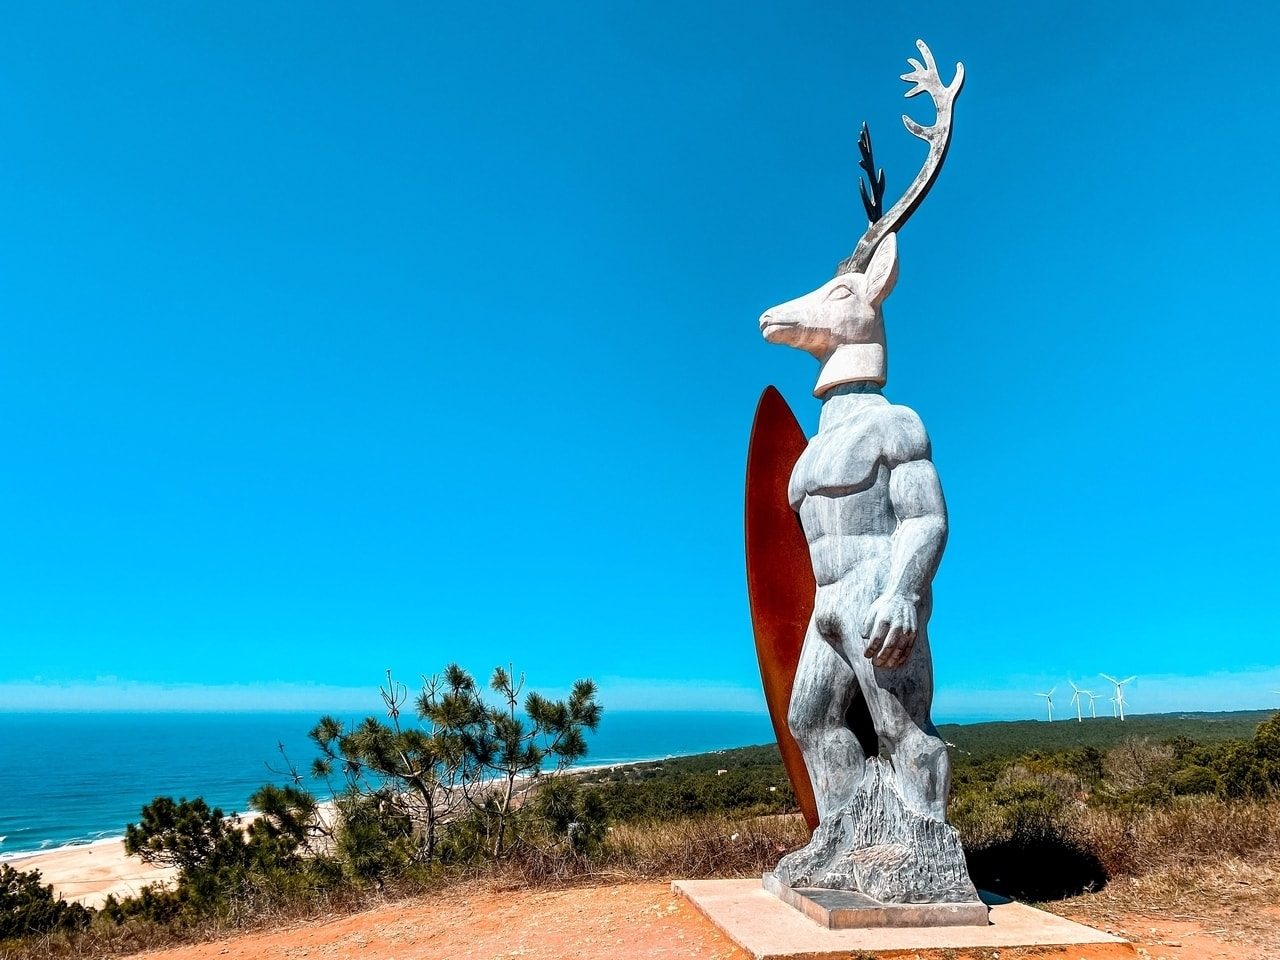 A sculpture and viewpoint overlooking the beach in Portugal.